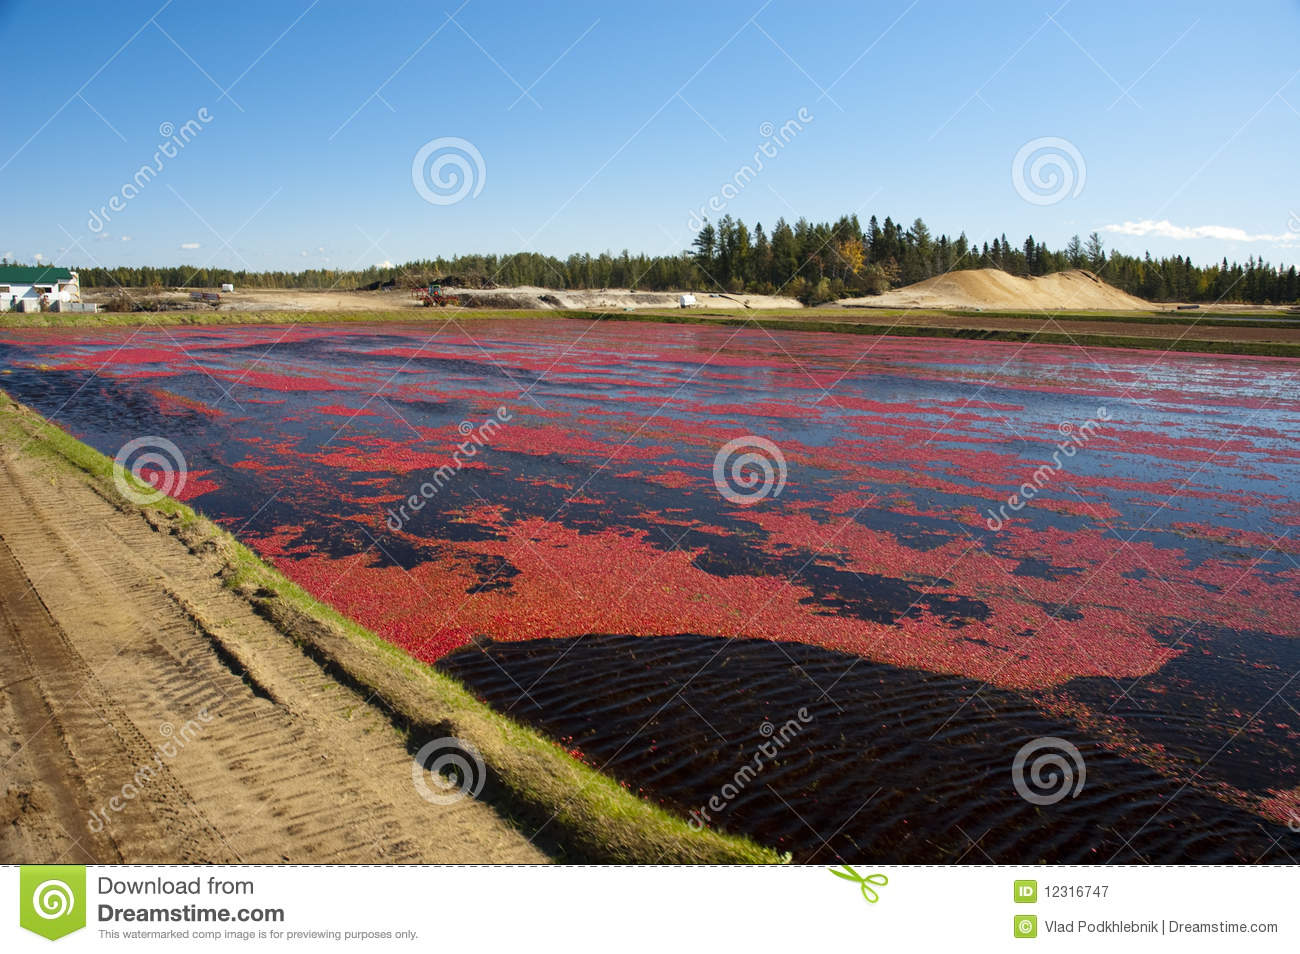 Cranberry farming Business Plans